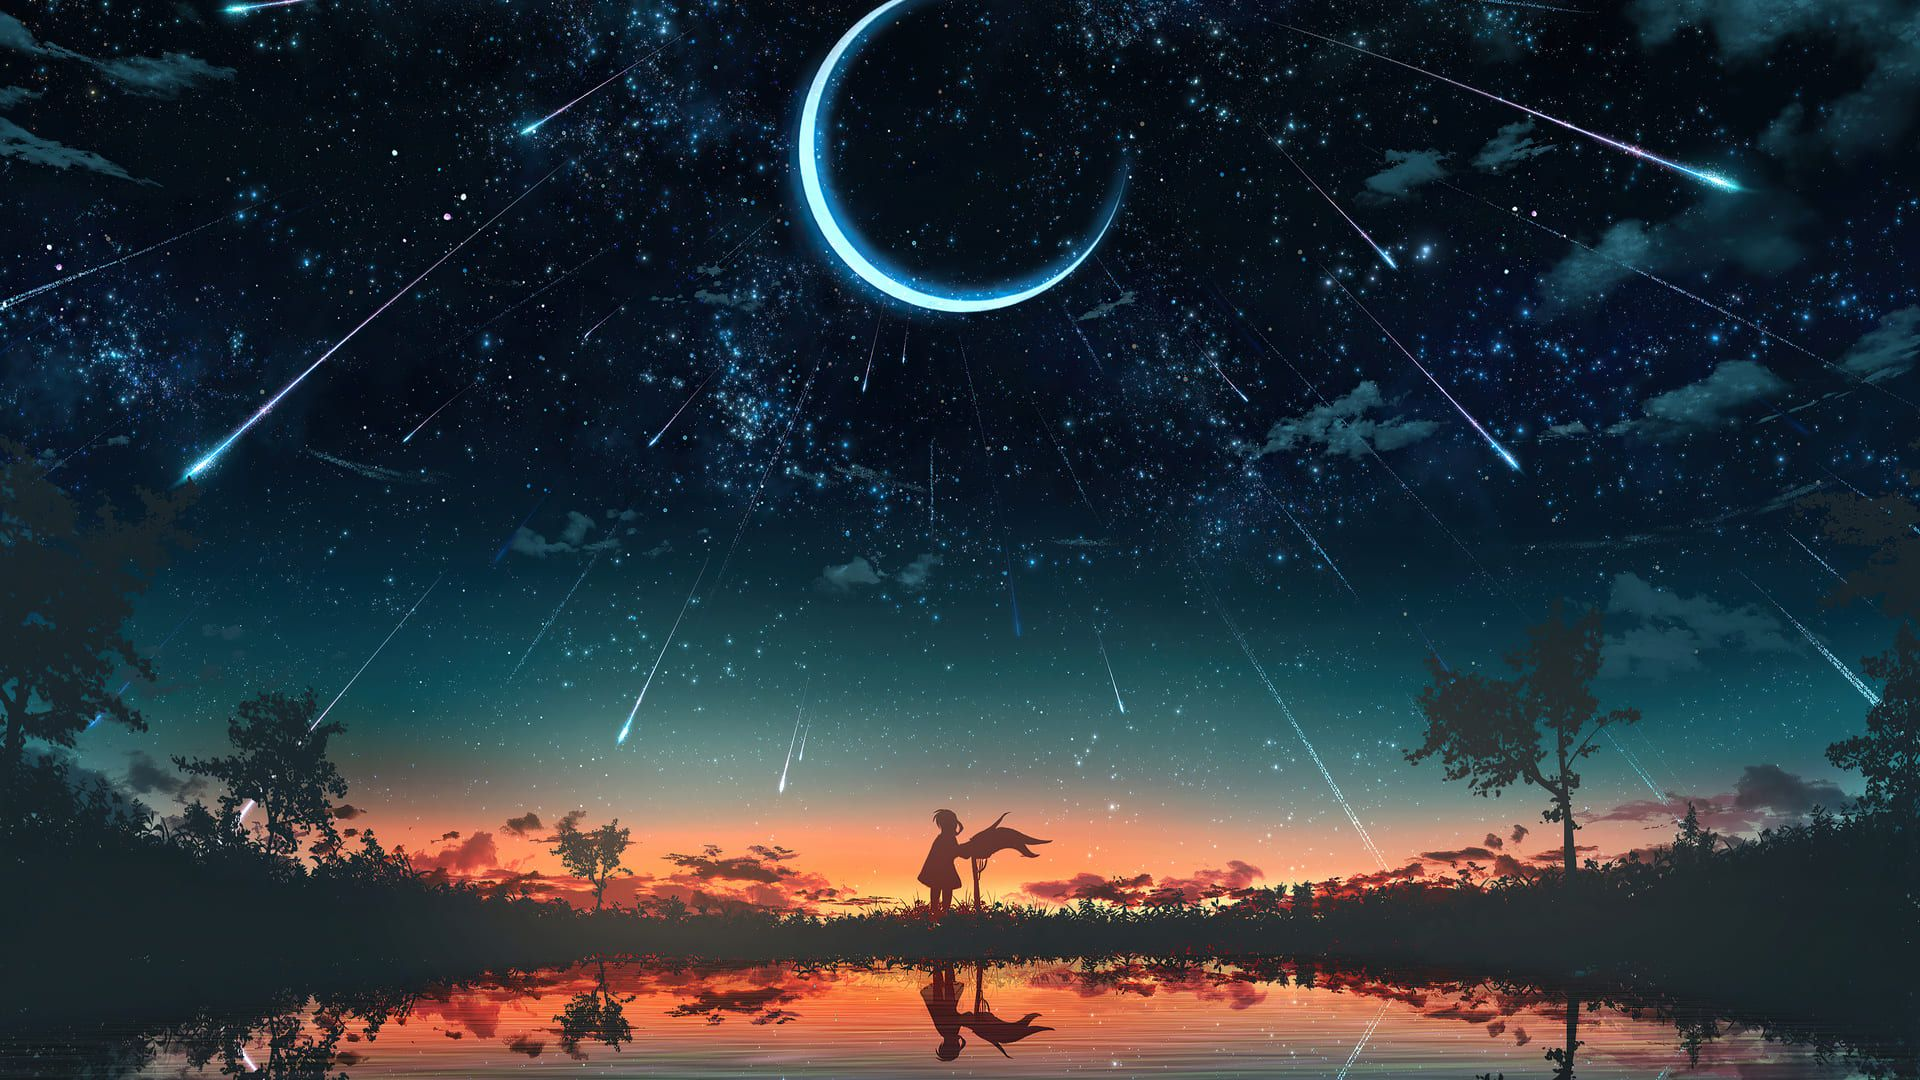 Coolest Wallpapers For Pc